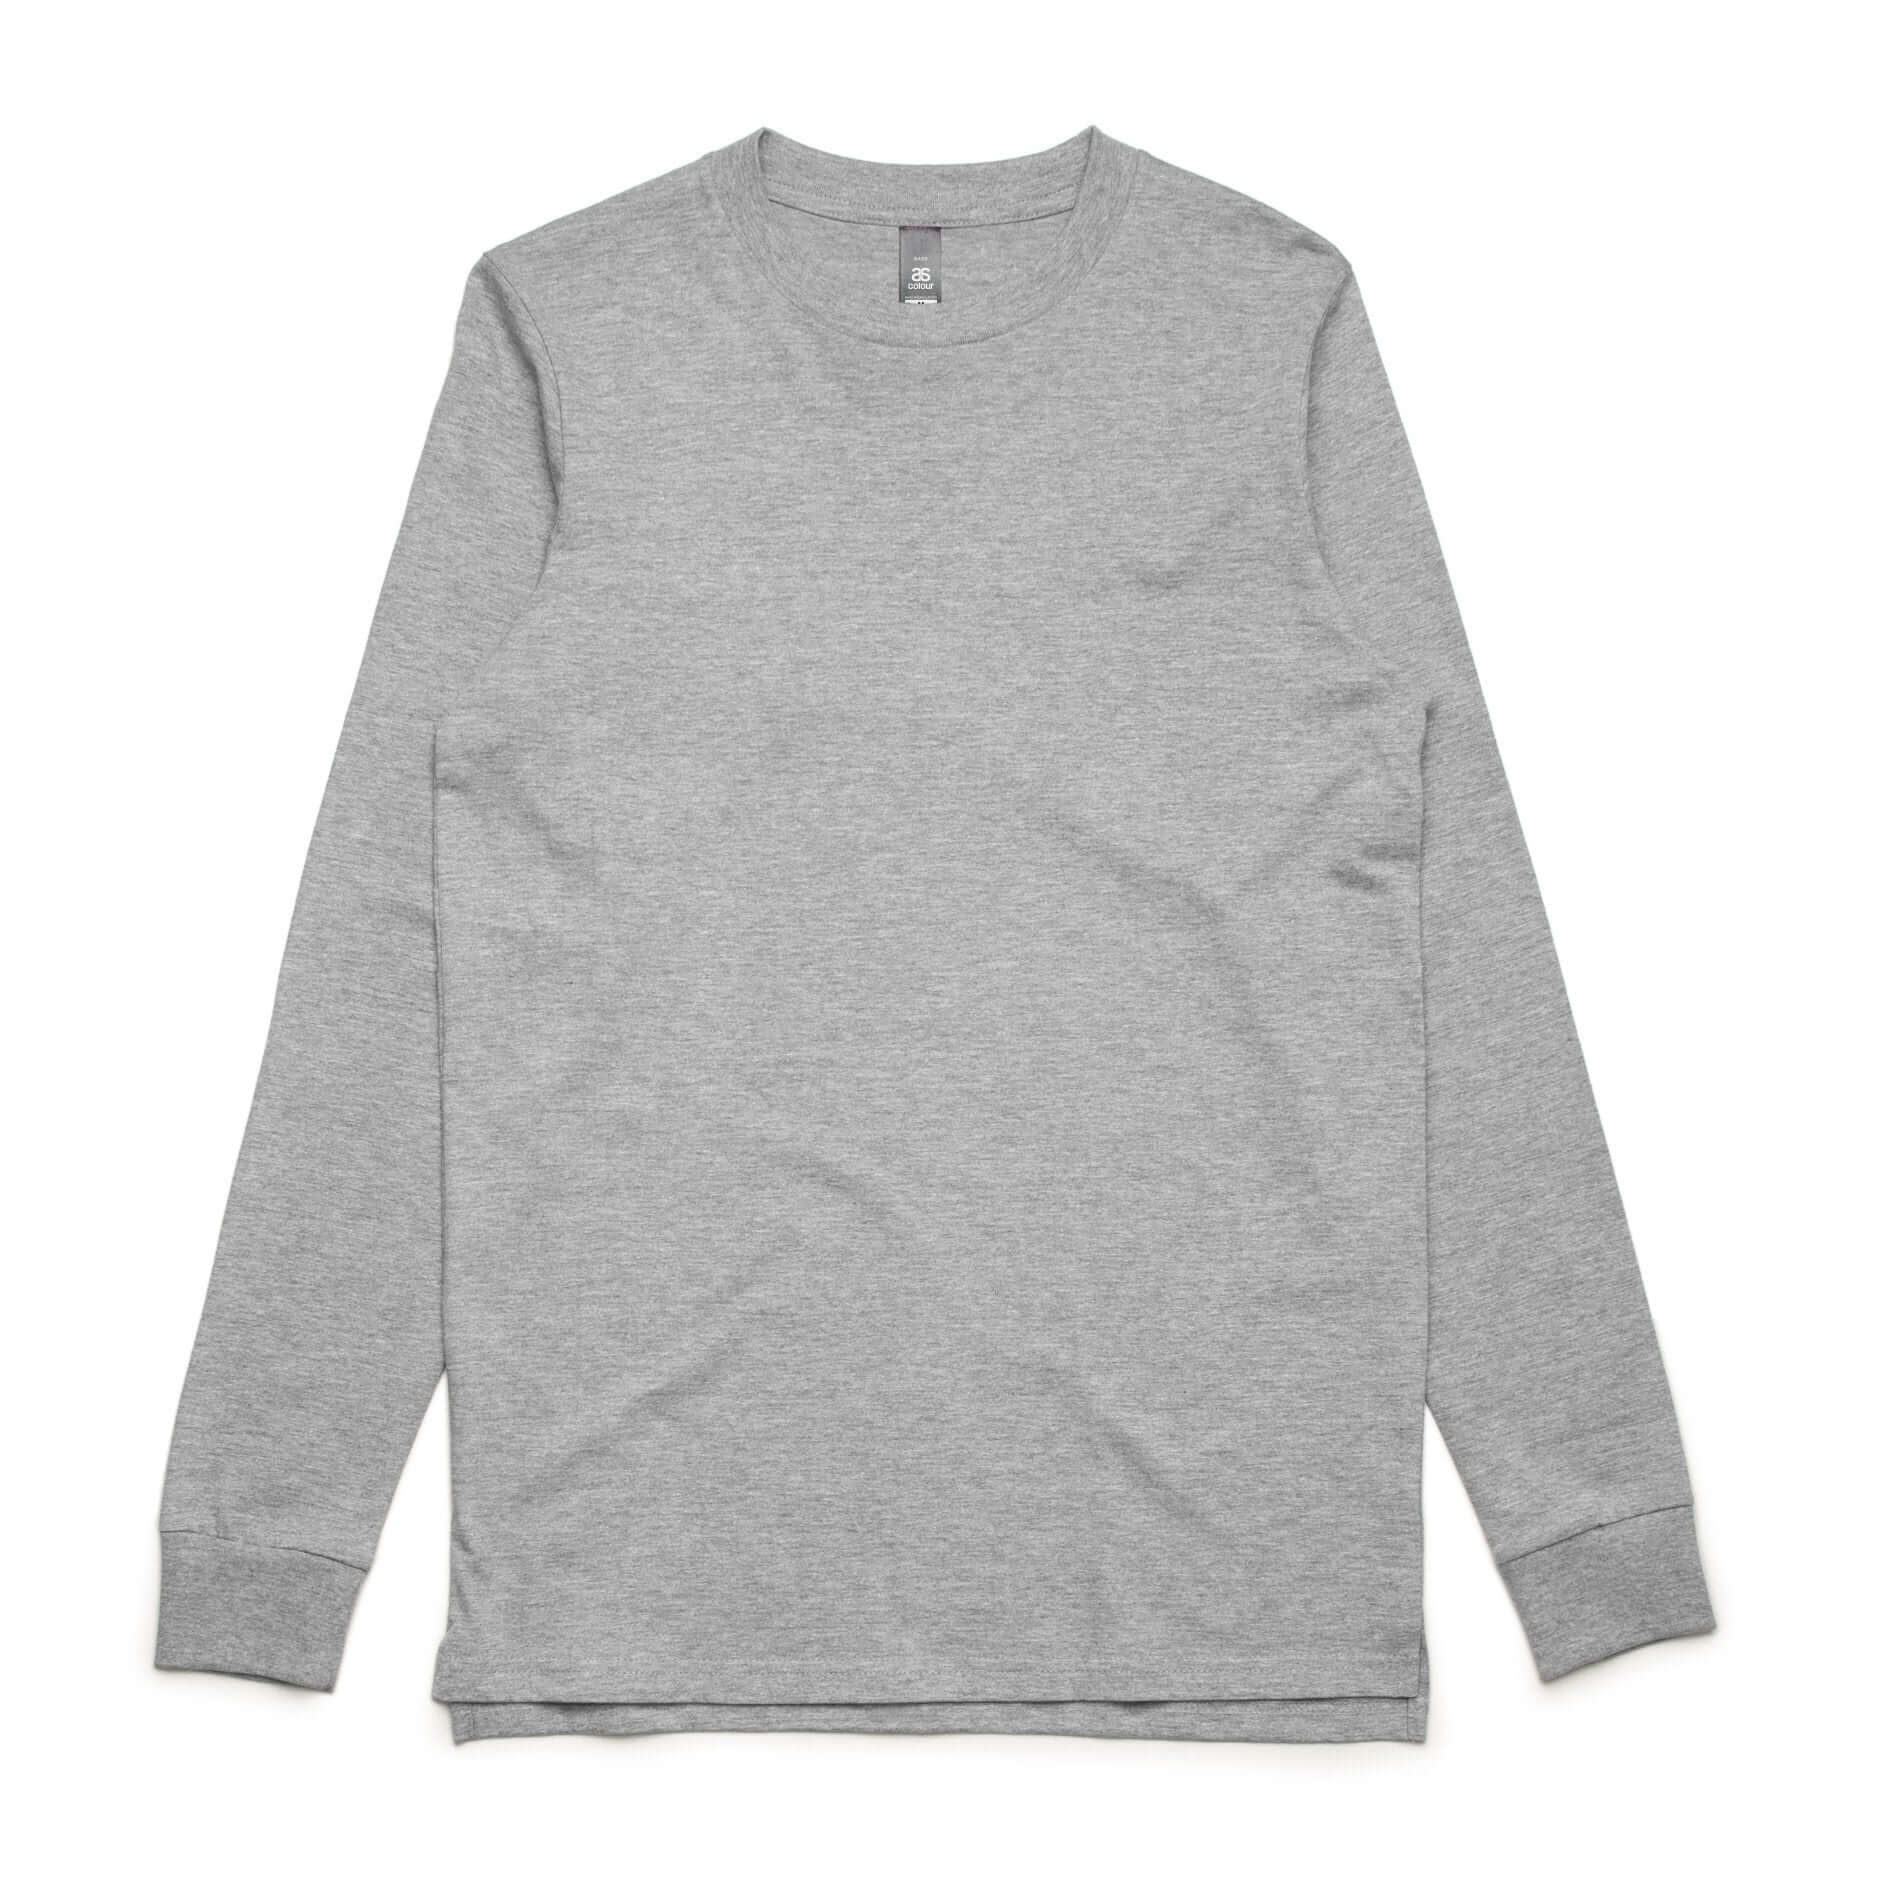 AS Colour BASE L/S TEE - Grey Marle